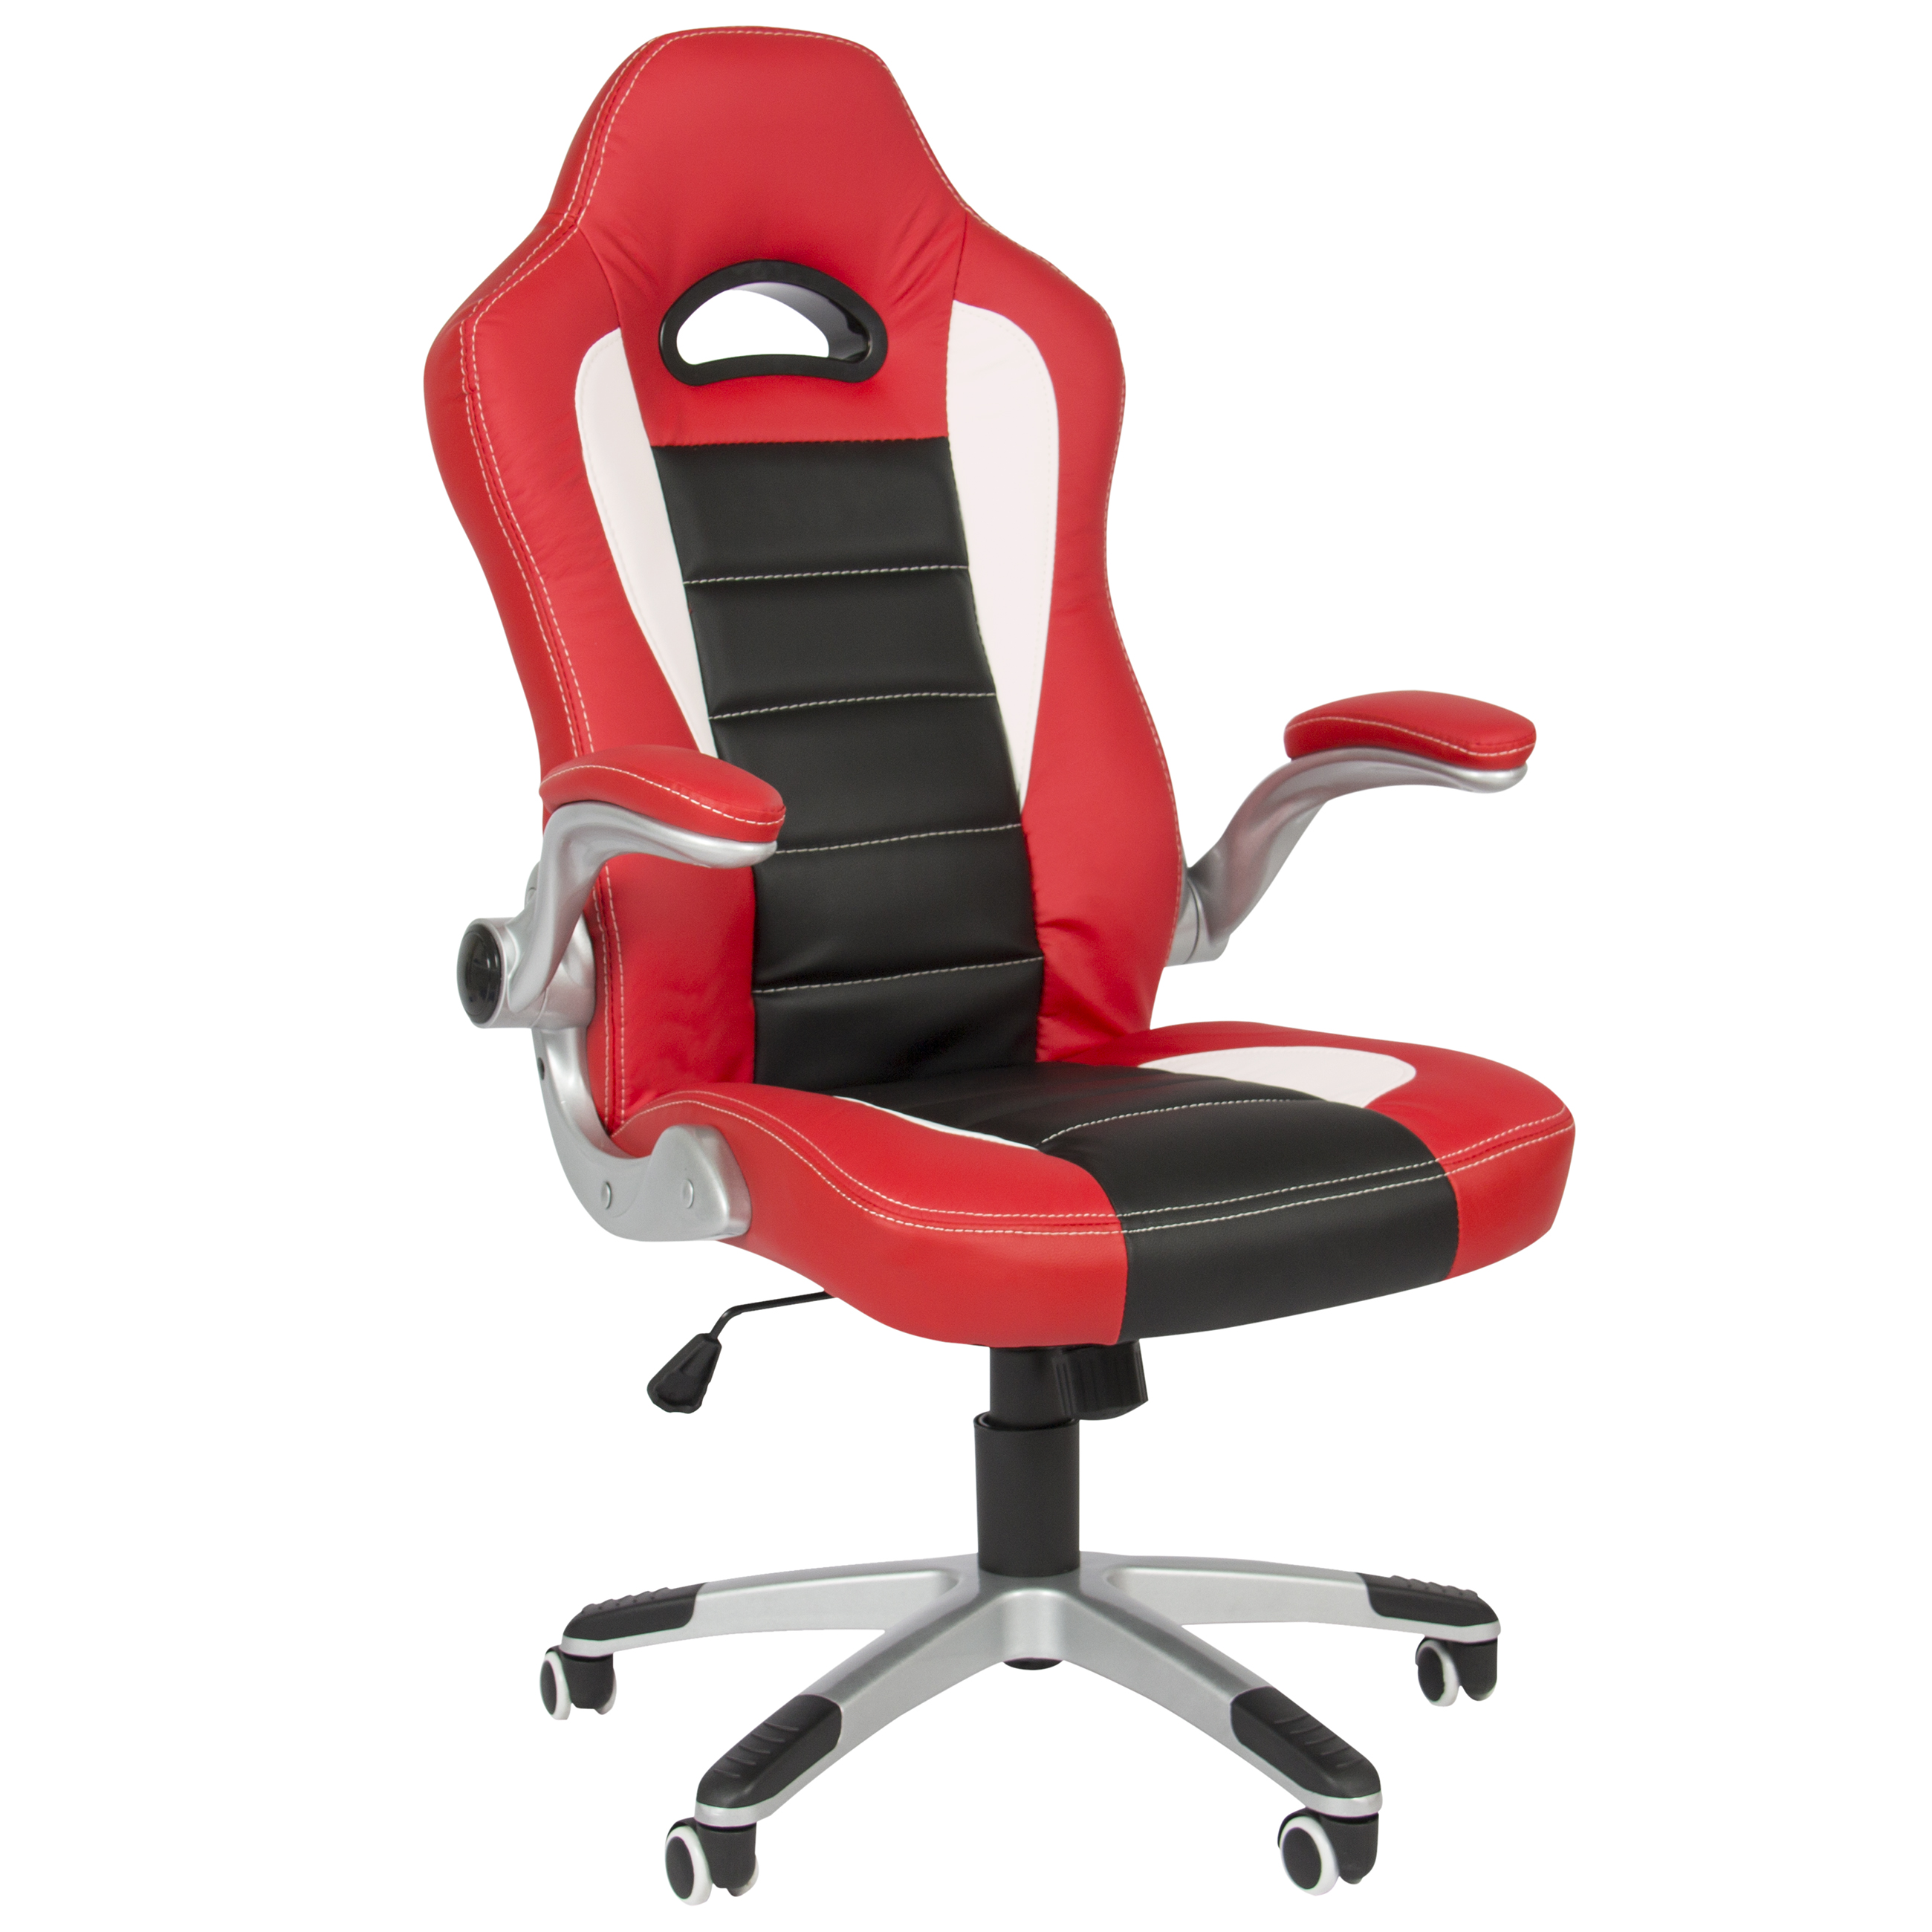 Best Choice Products Executive Office Chair PU Leather Racing Style Bucket Desk  Seat Chair Red